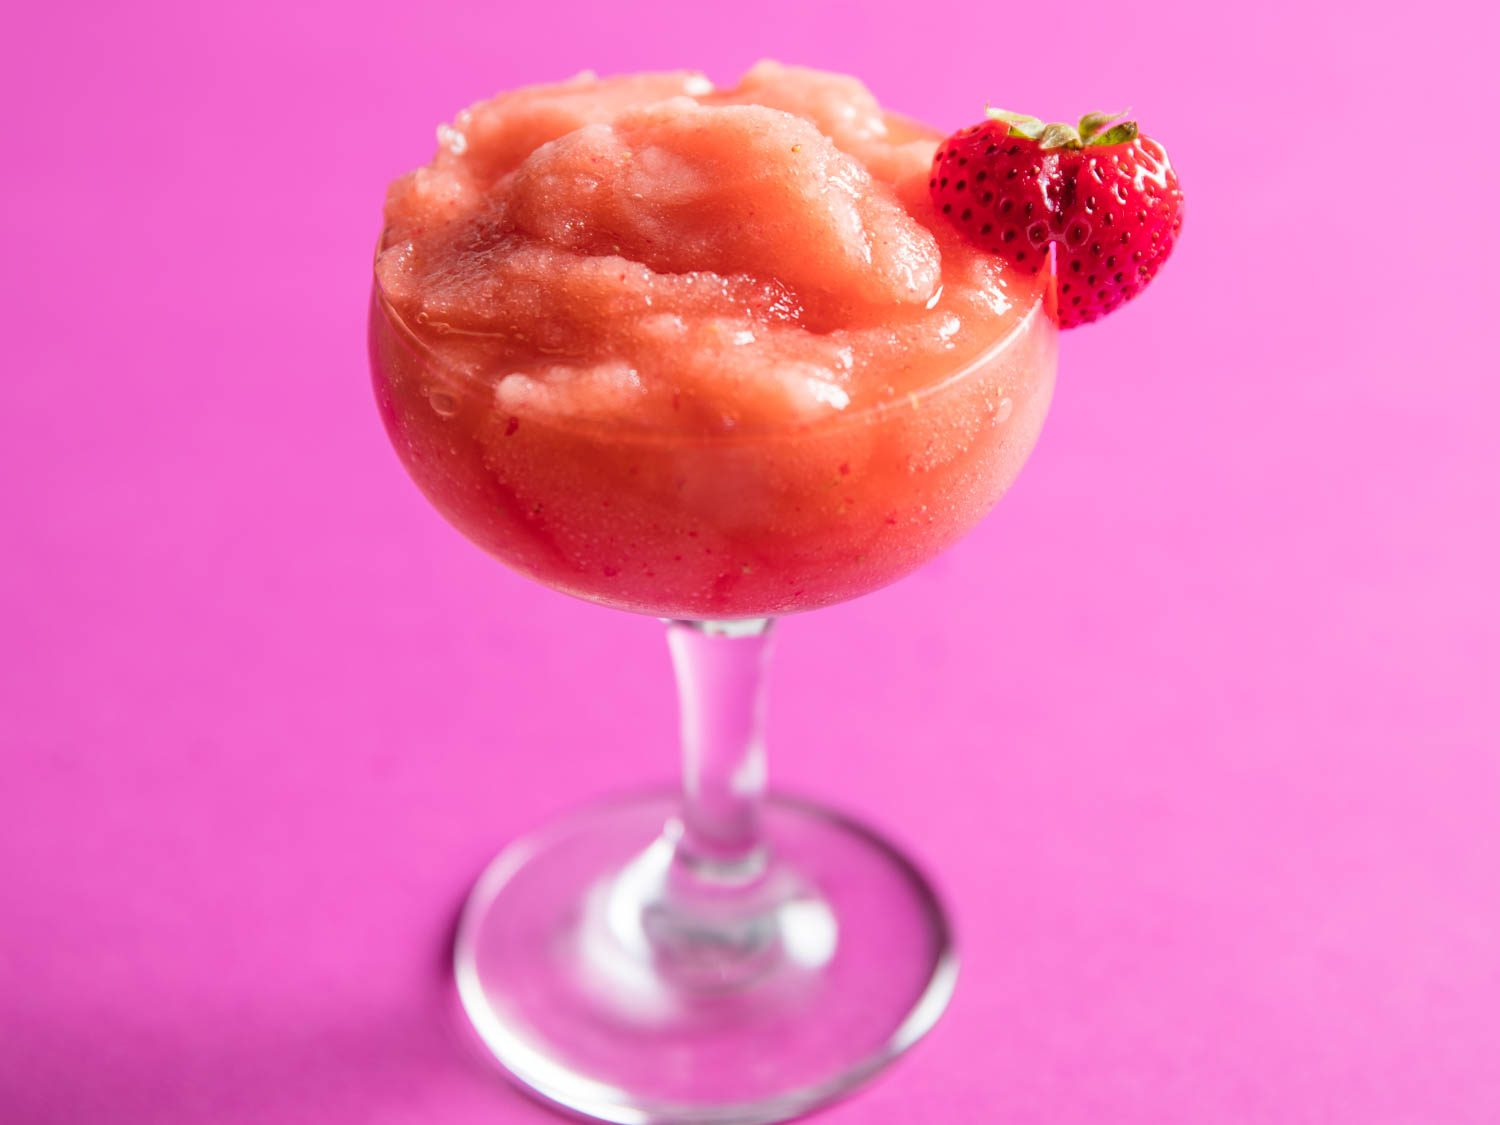 Image for unsobered listicle on frozen cocktails